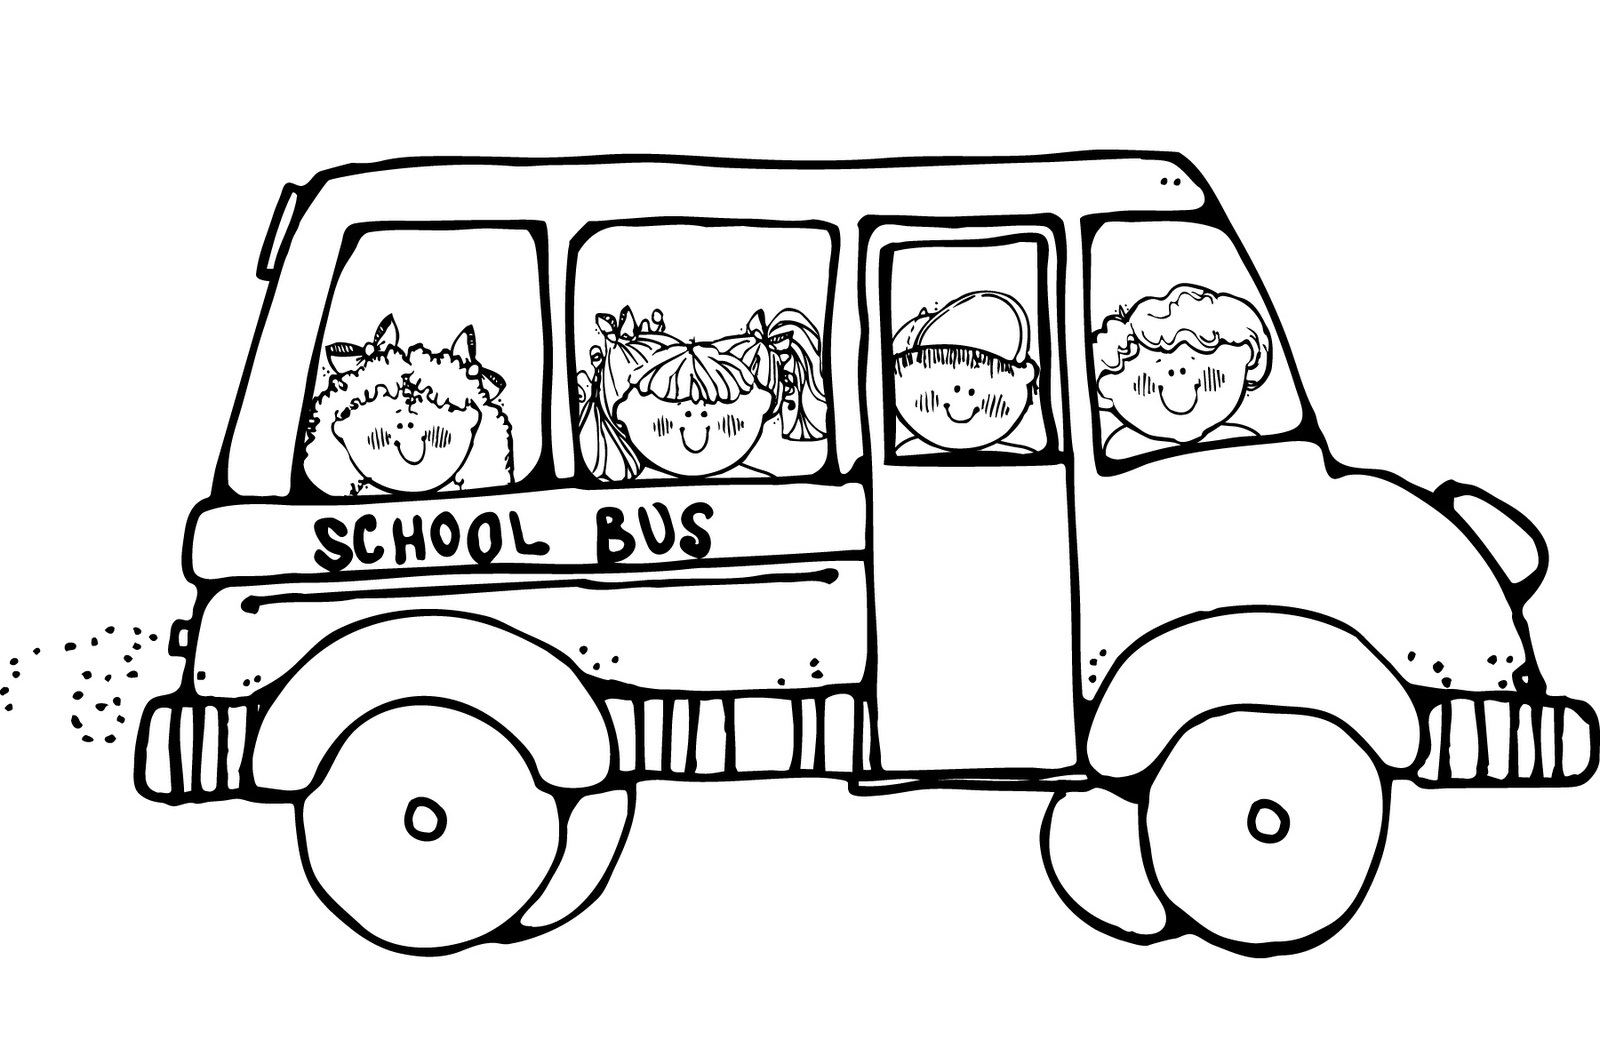 coloring sheet school bus coloring page free printable school bus coloring pages for kids school sheet coloring bus page coloring